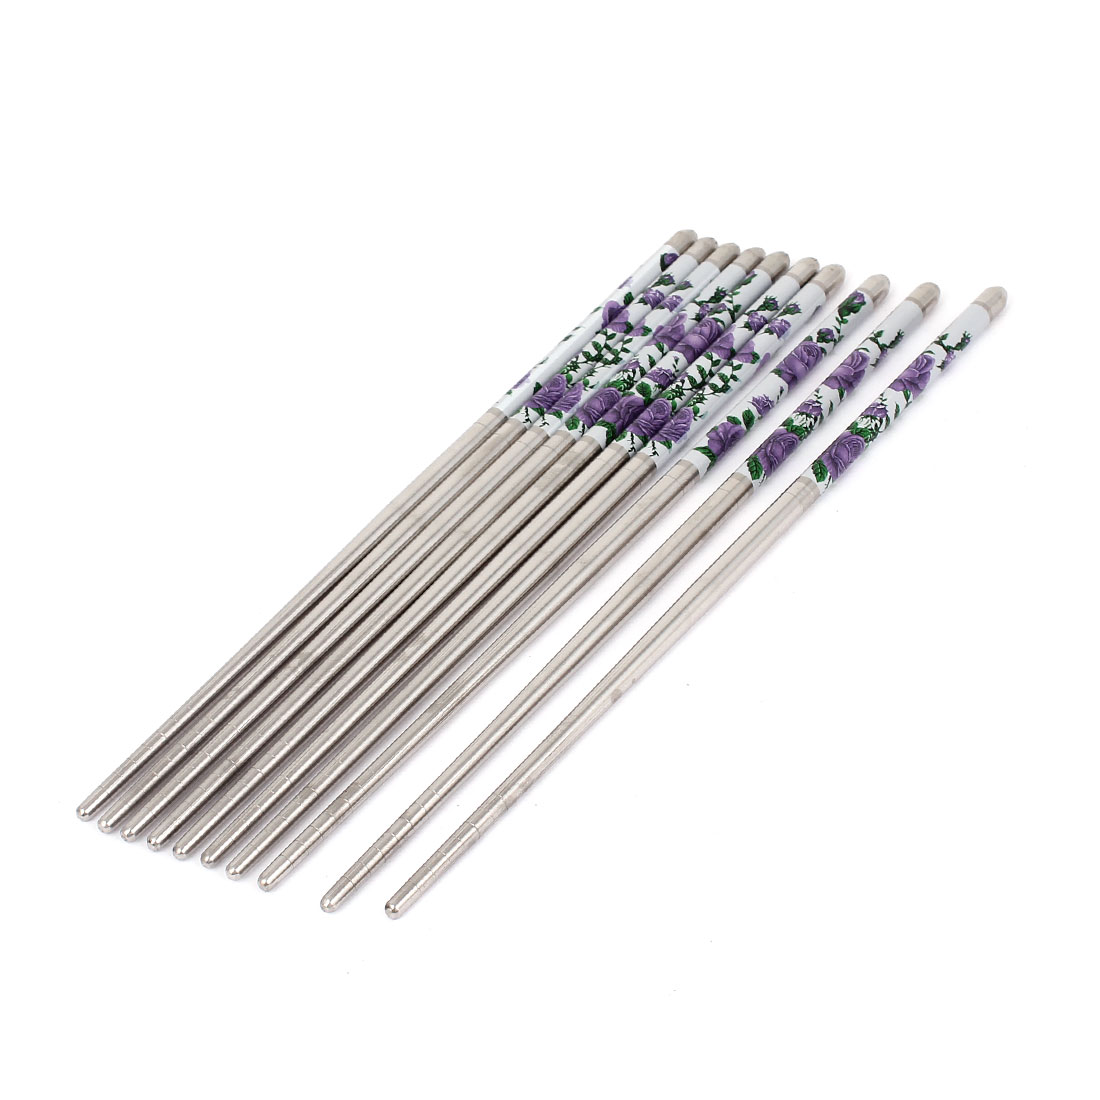 Kitchen Tableware Flower Pattern Stainless Steel Chopsticks 22.5cm Long 5 Pairs